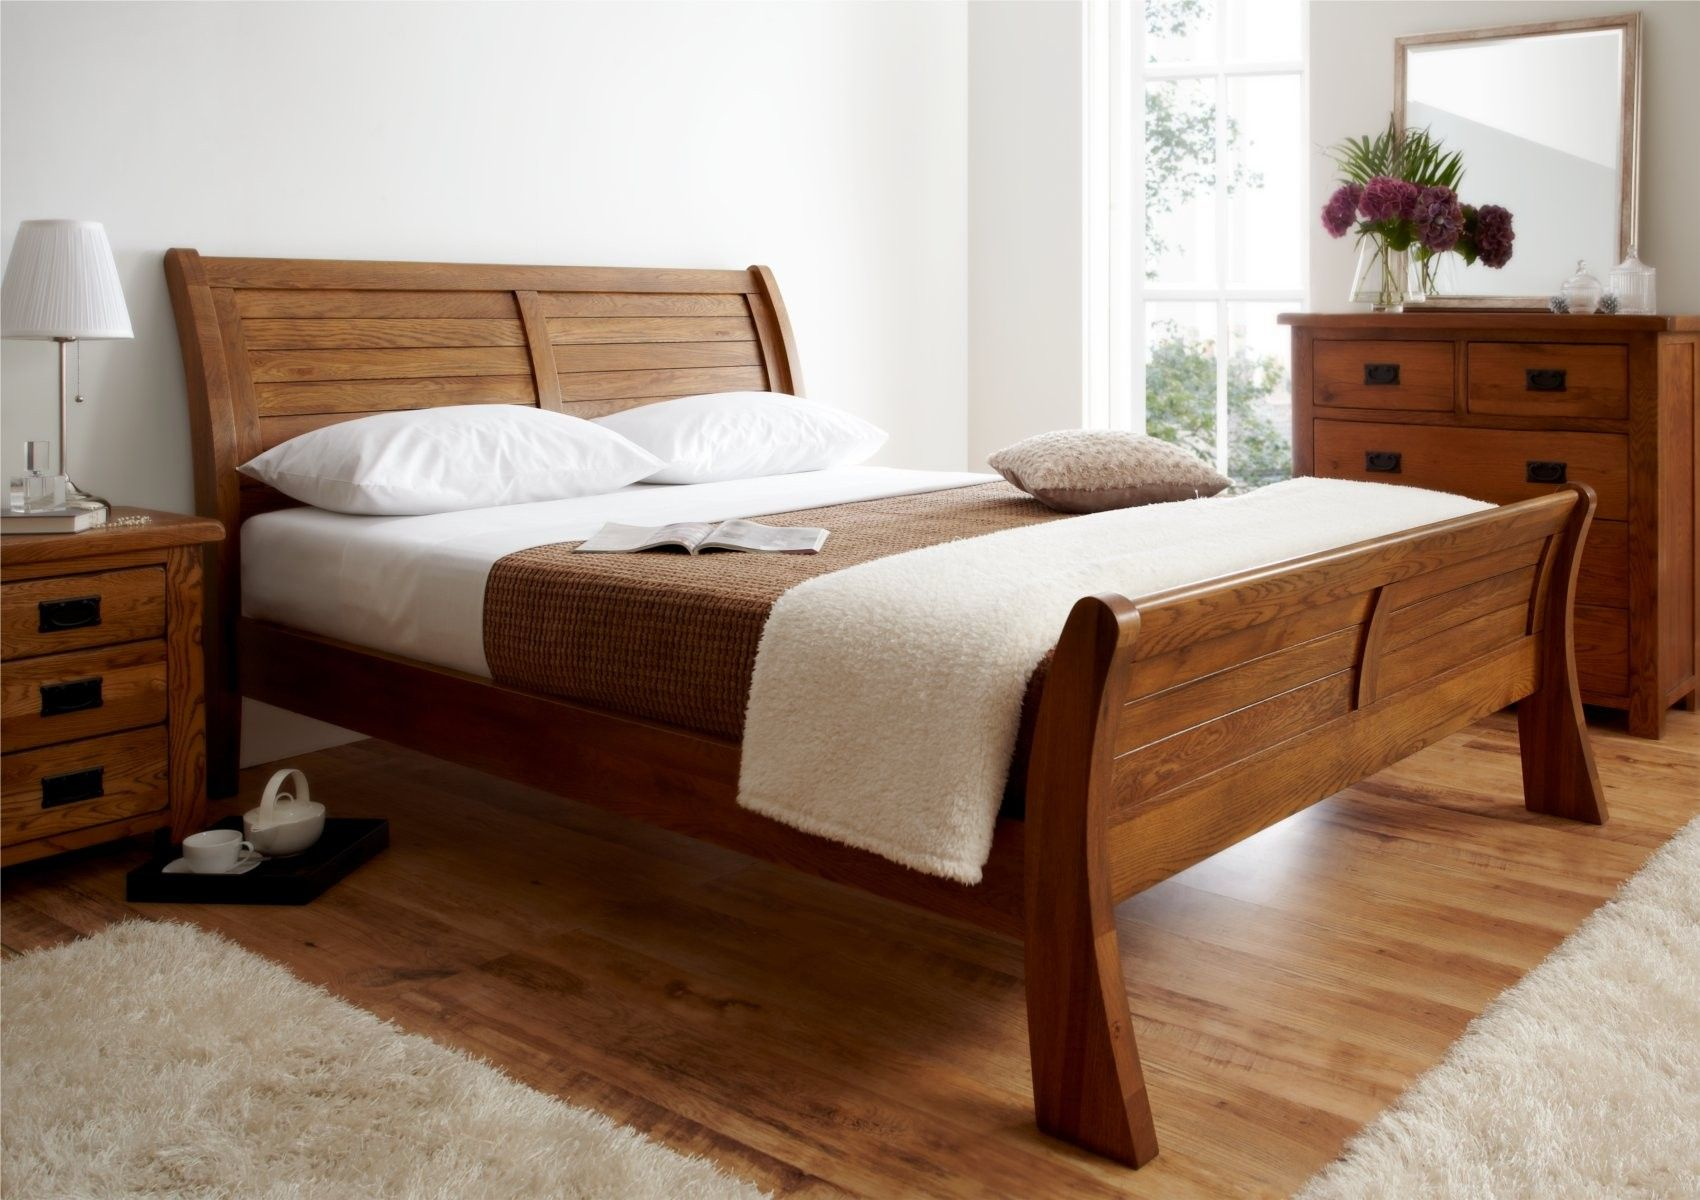 Wooden Beds 53 Different Types Of Beds Frames Styles That Will Go Perfectly